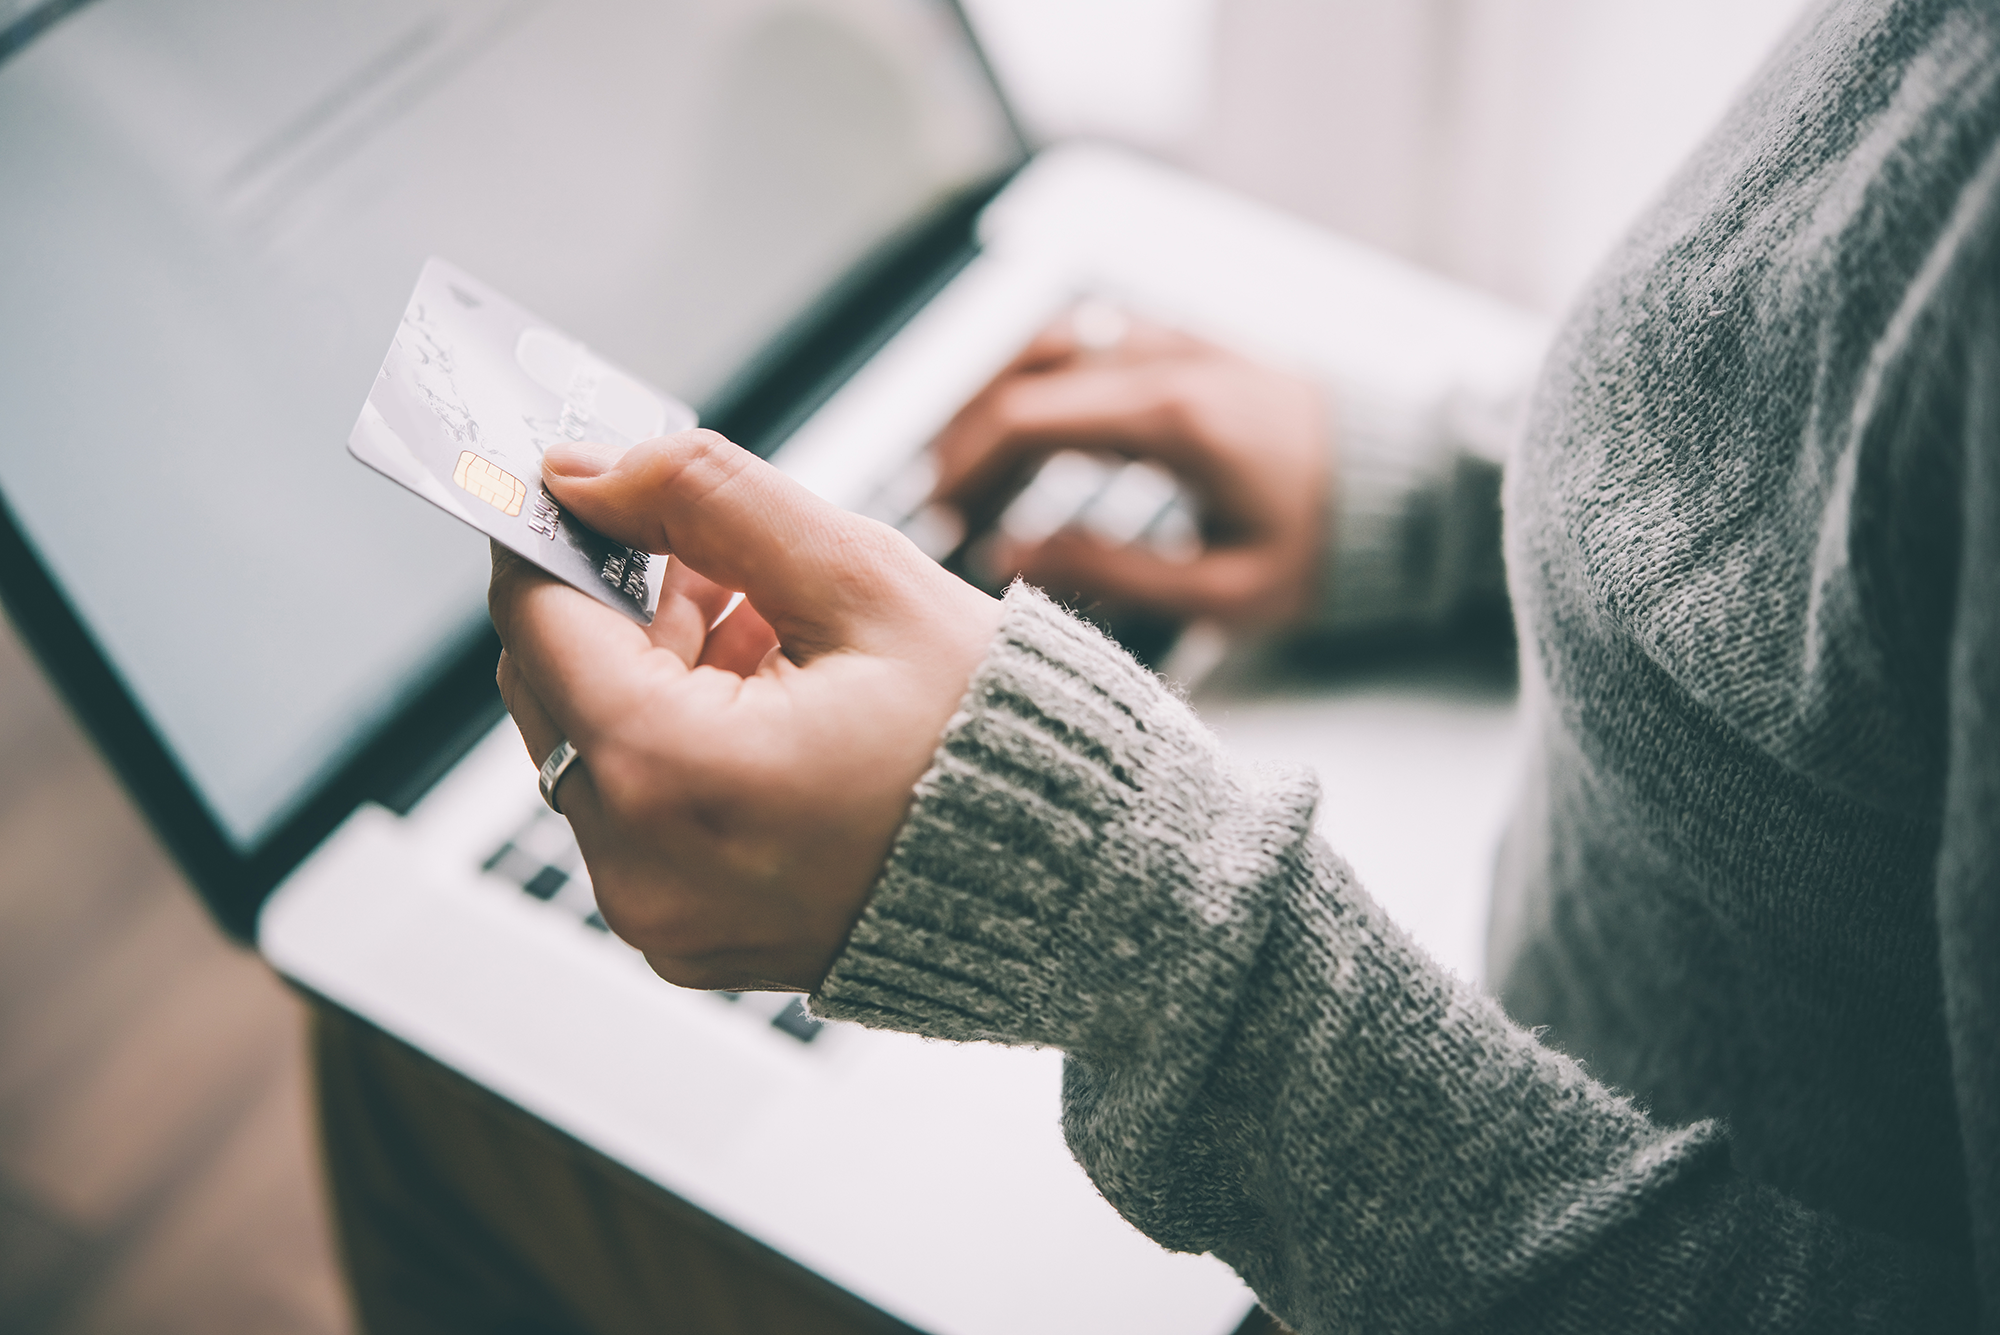 A woman uses a laptp to make a credit card payment online